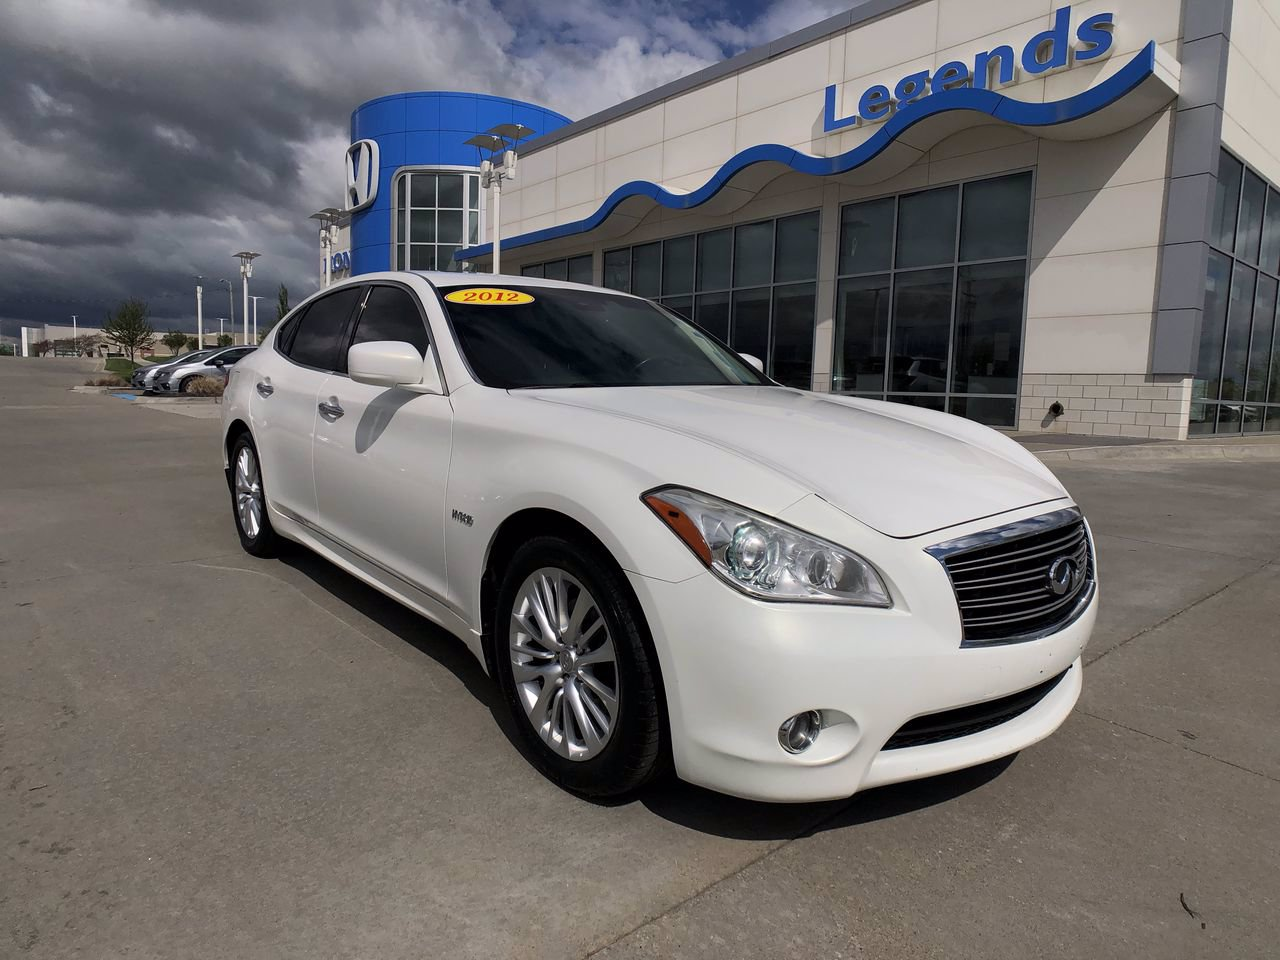 Pre-Owned 2012 INFINITI M35h Hybrid